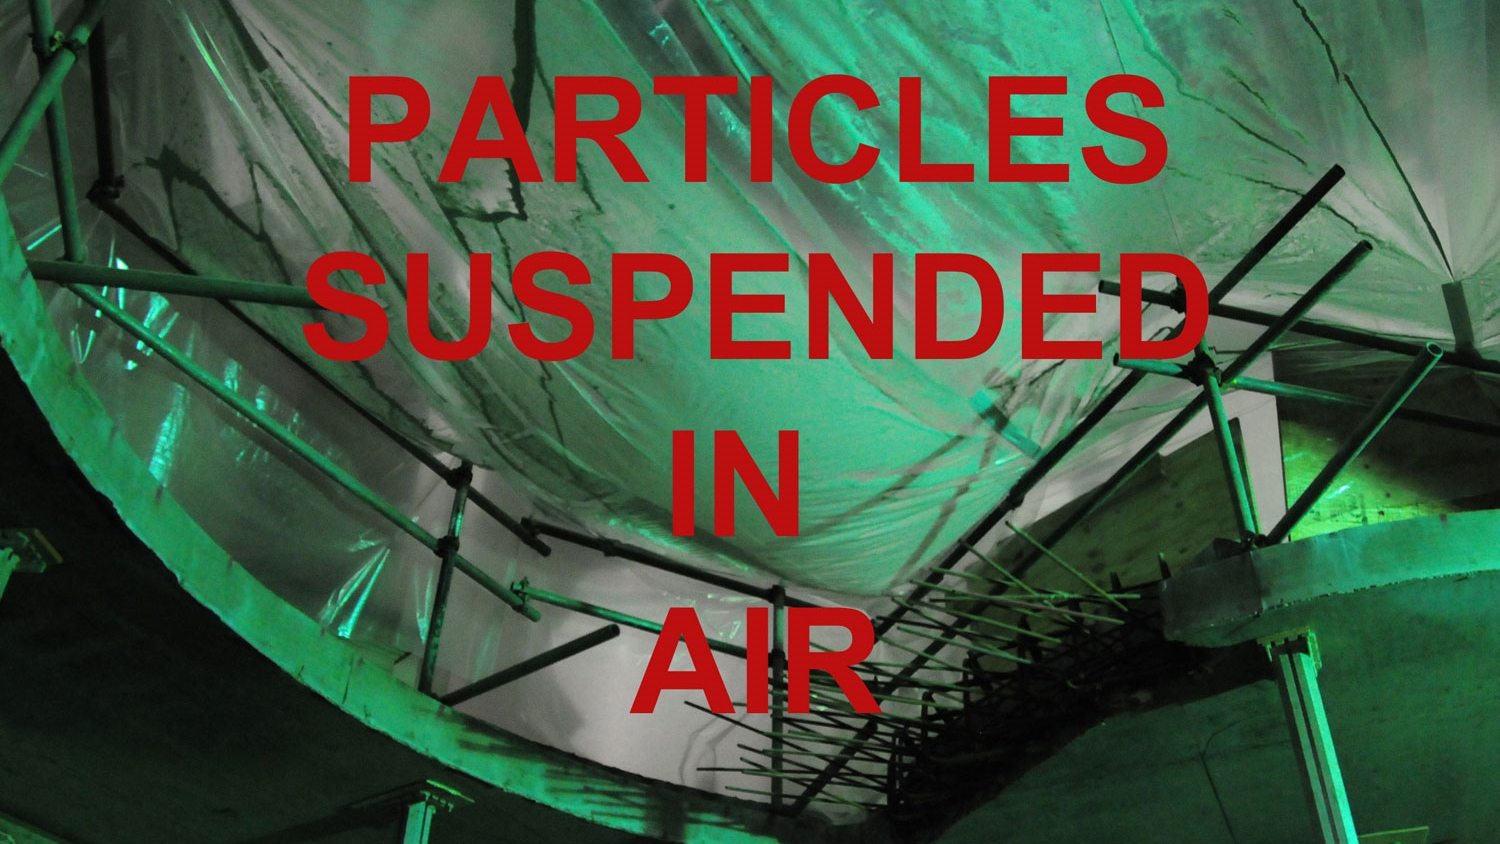 5-LVA-Tate-PARTICLES-SUSPENDED-1500w-1500w-web.jpg